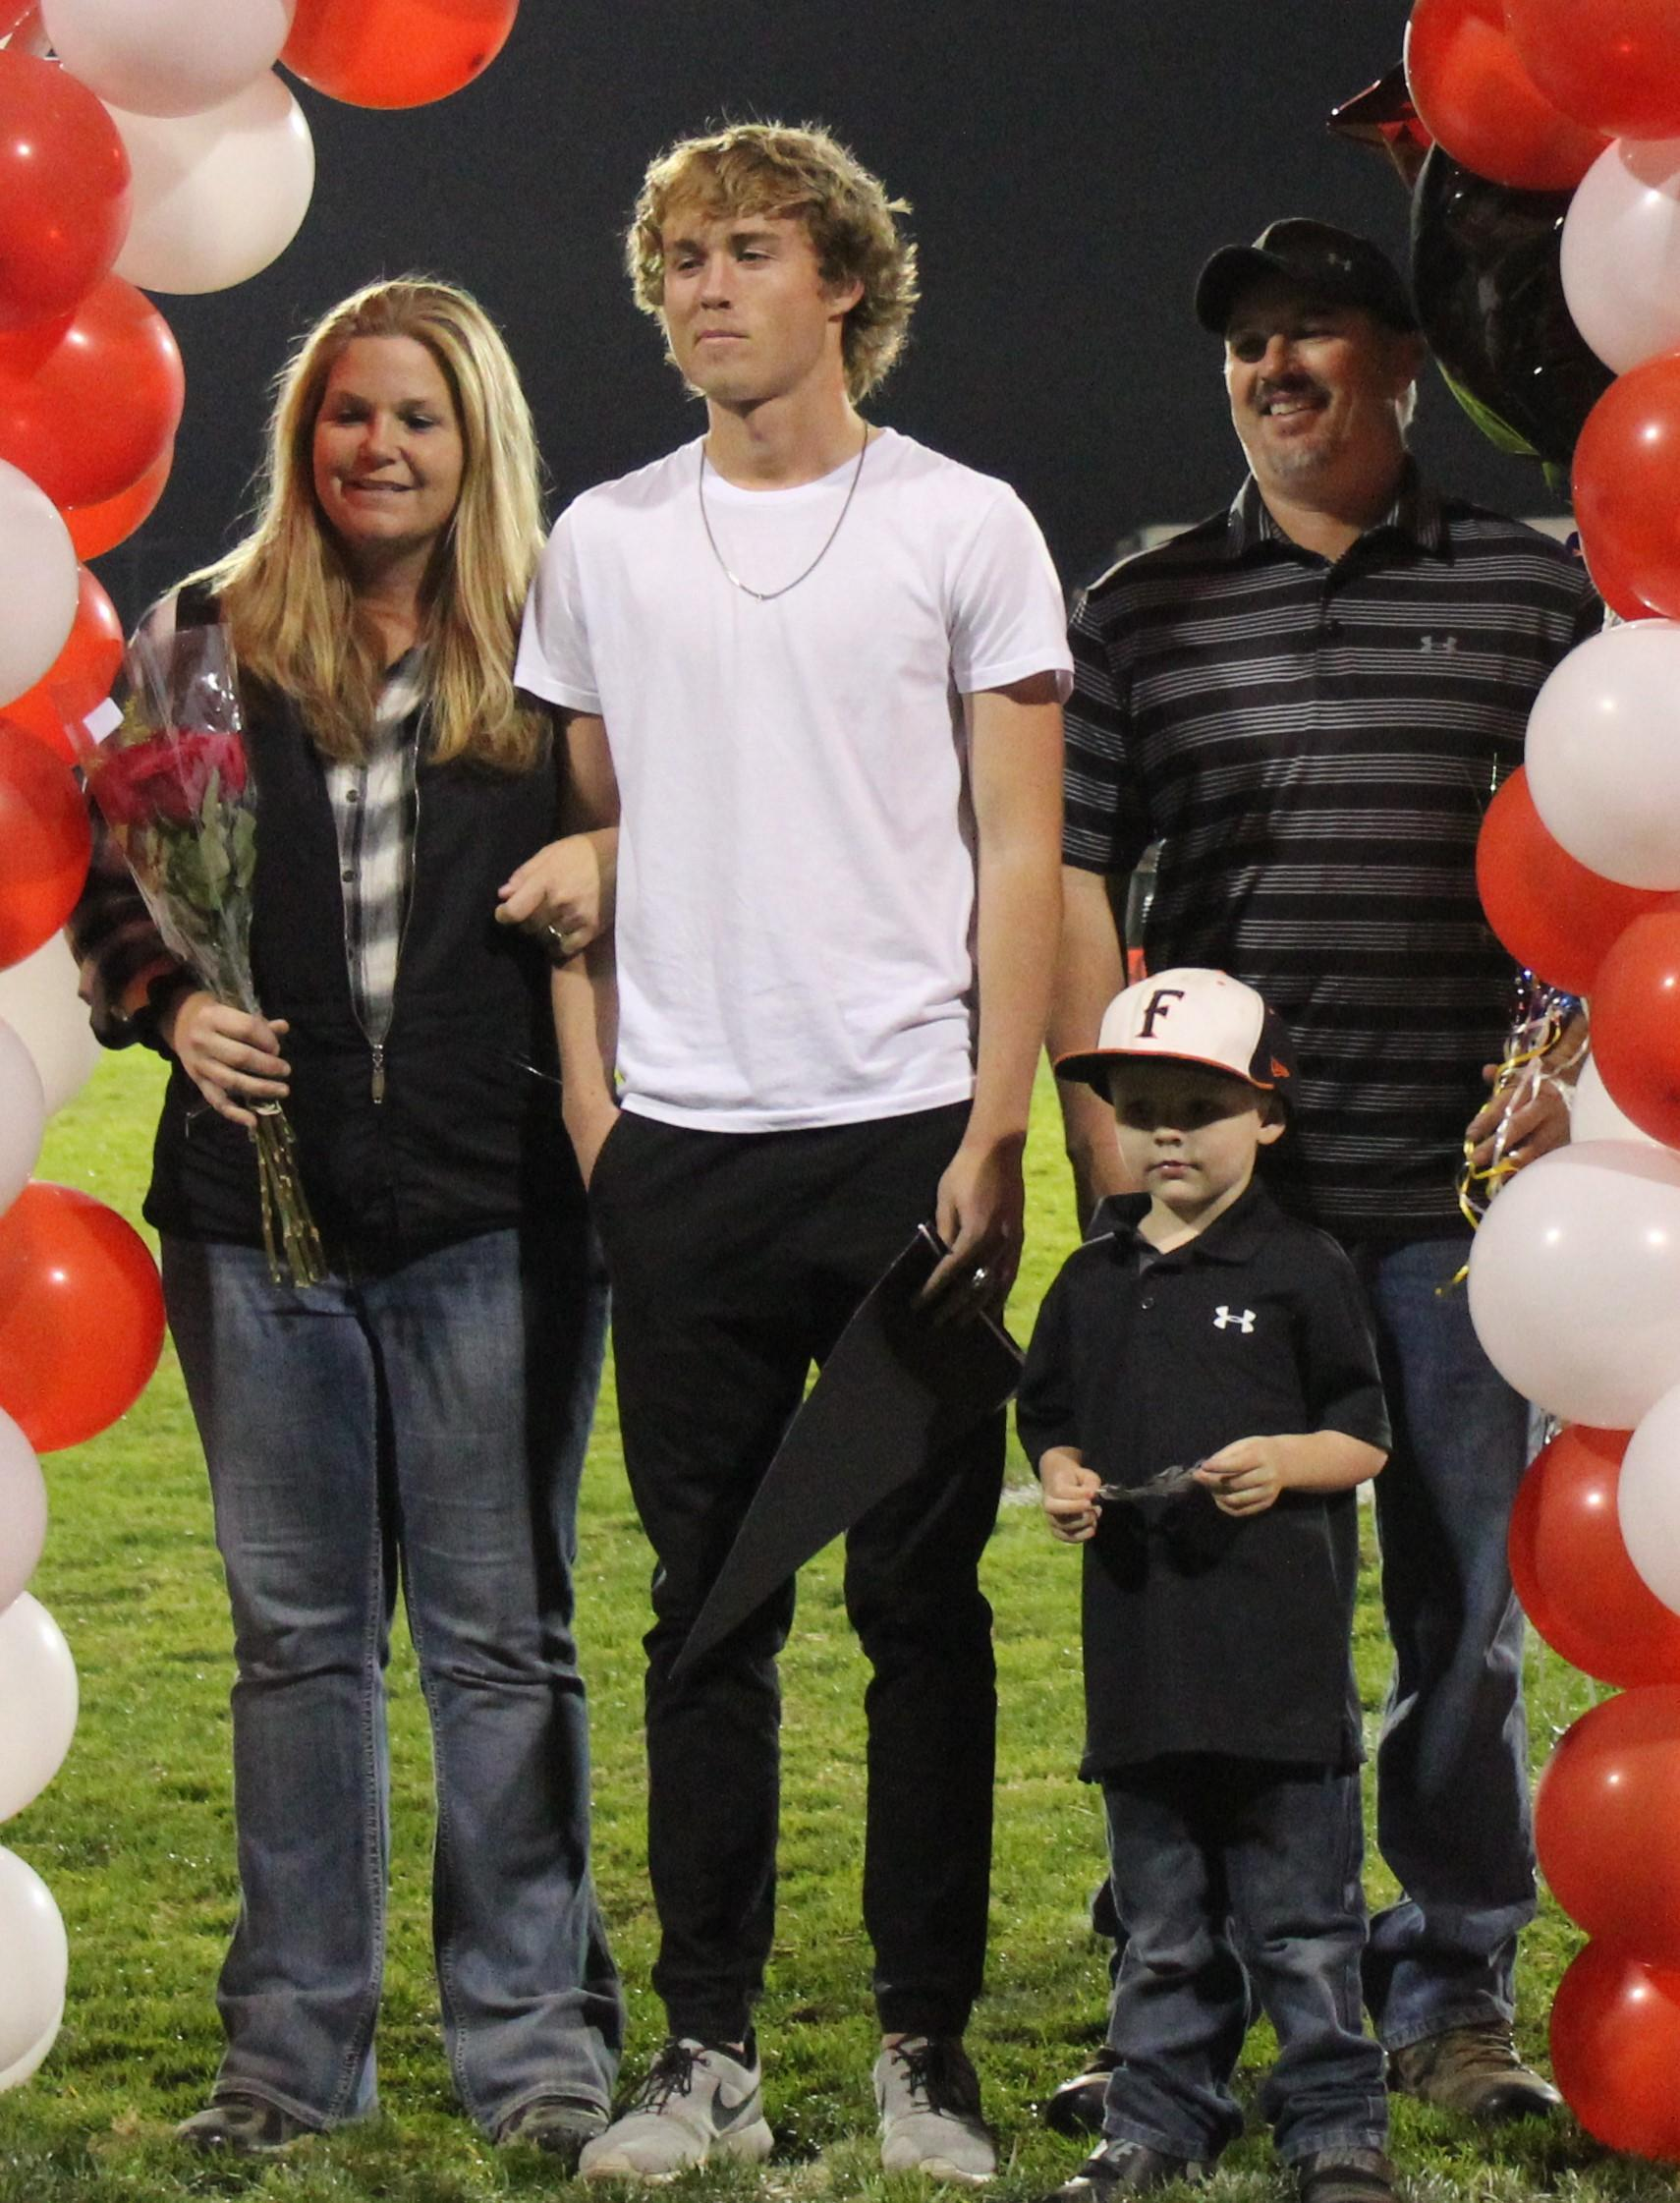 Kolton Stonier and his supporters at Senior Night.